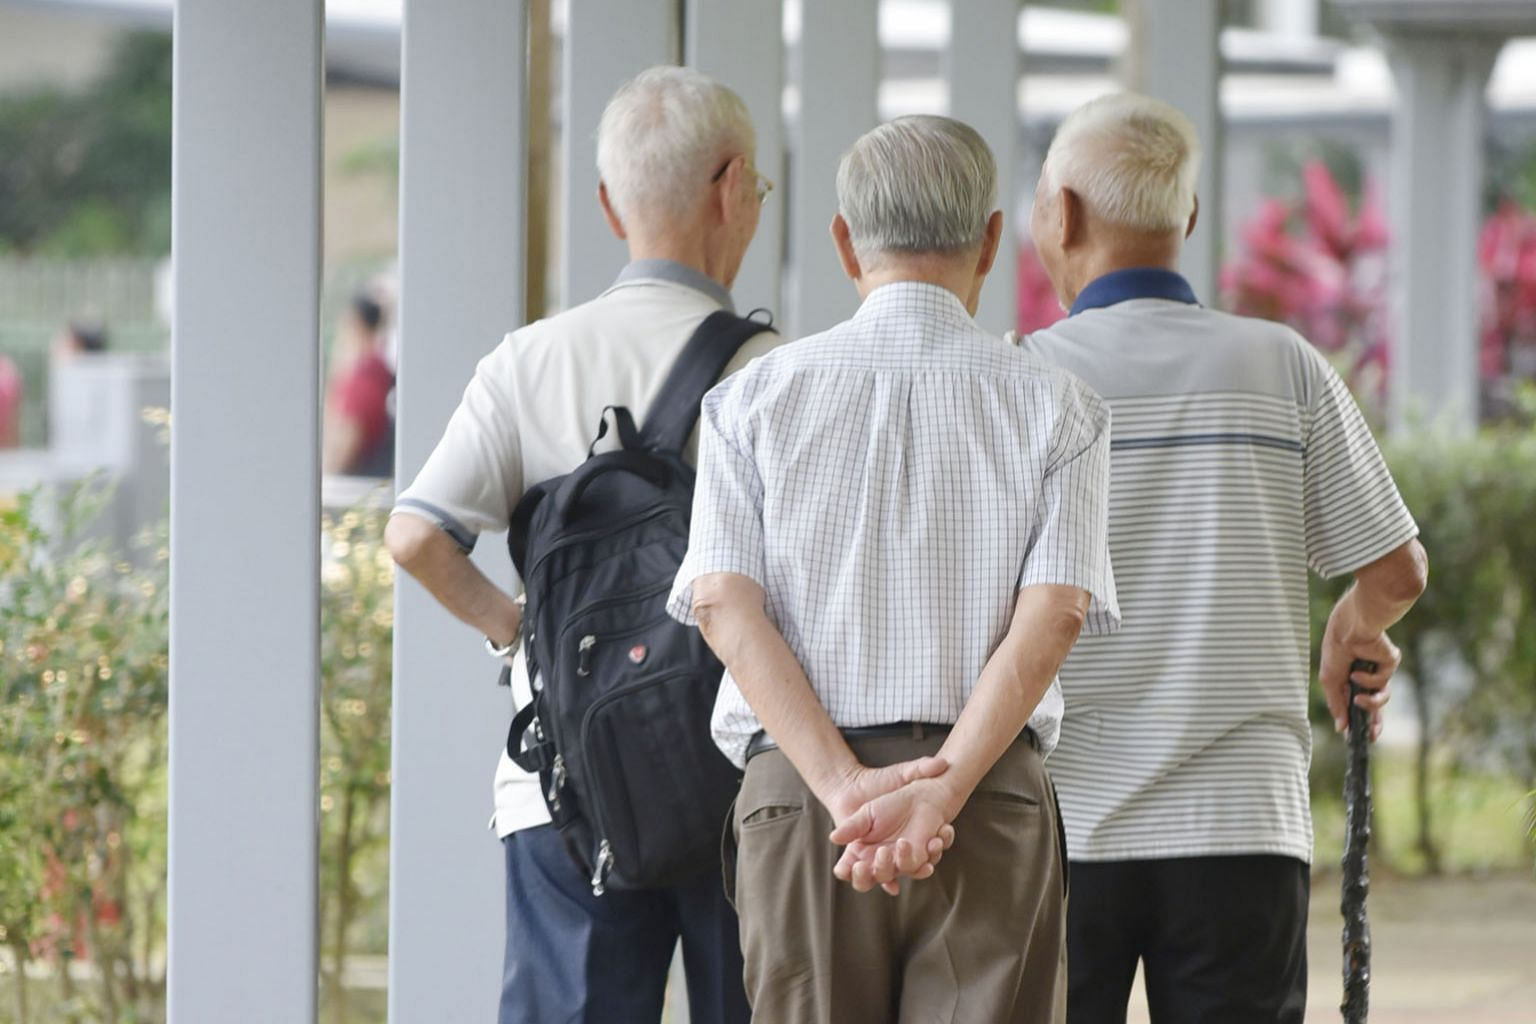 The writer says policymakers and community activists should consider cross-cultural contexts when designing programmes to promote productive ageing in Asia. Productive ageing blueprints envision a society where older adults will have sufficient suppo